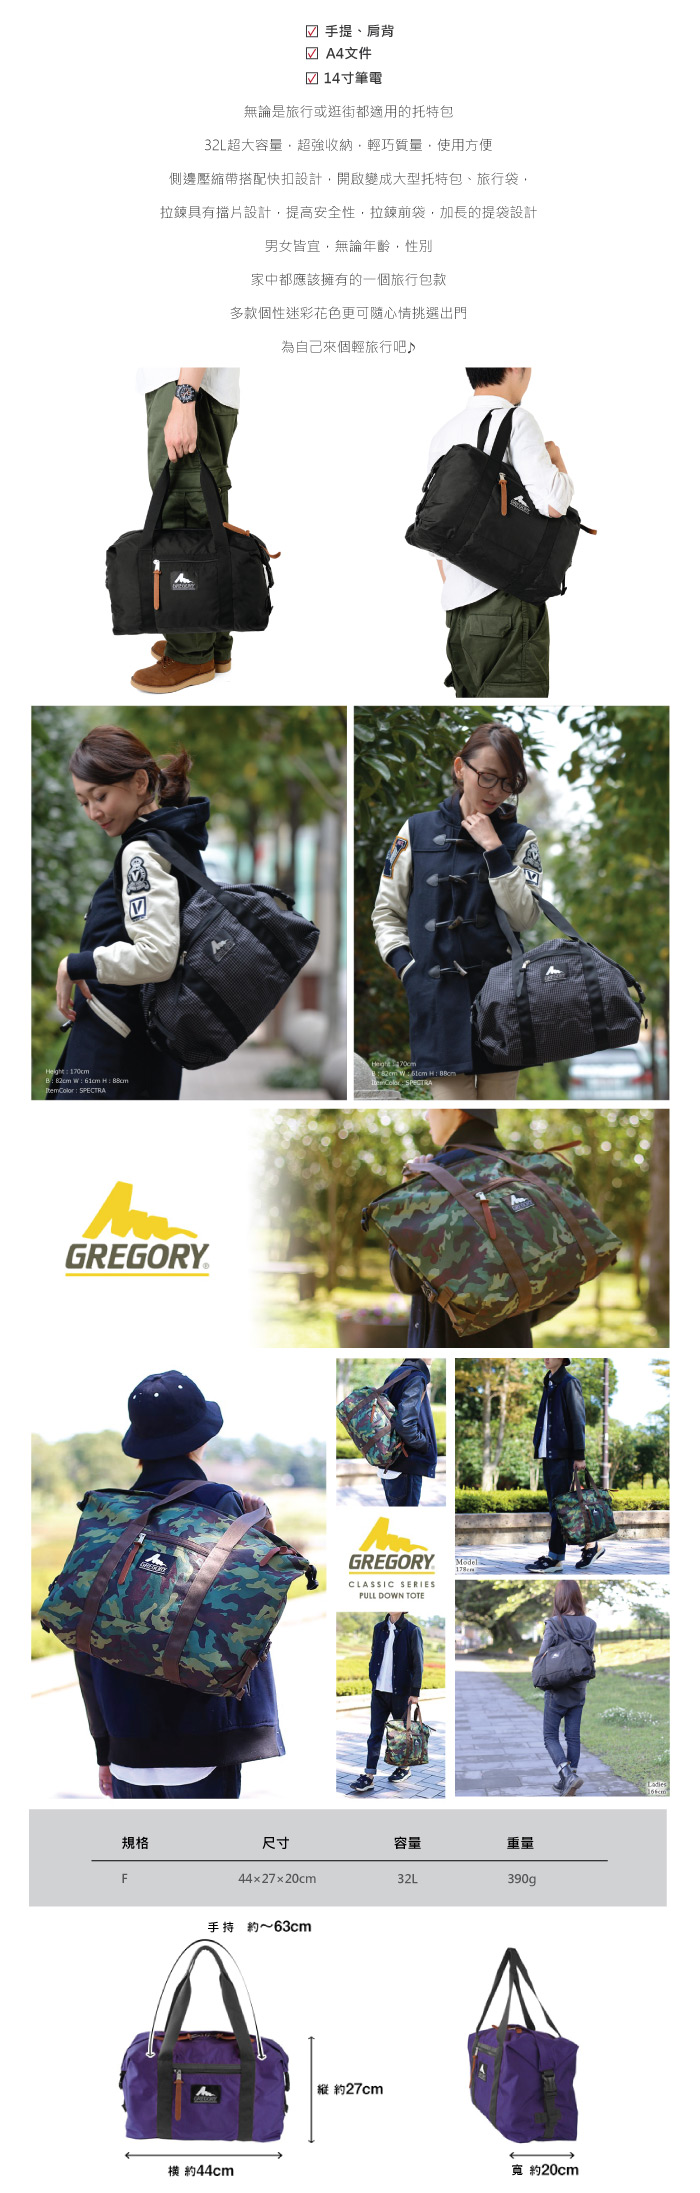 �i���Gregory�jPull Down Tote��t�𶢦��S�]32L-�¦�-�ӫ~²����2